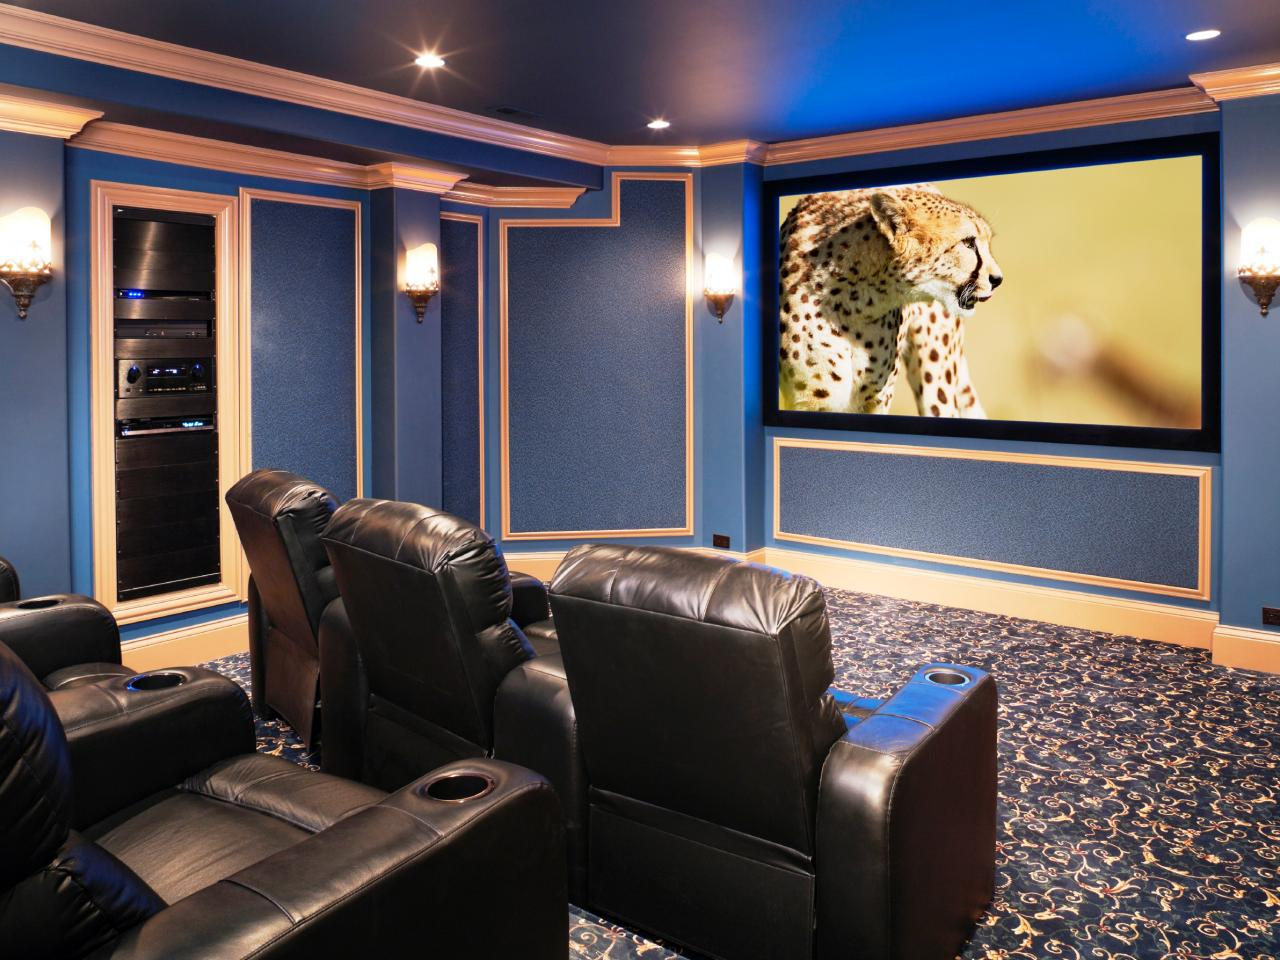 Family friendly home theaters from home theater media room design ideas how - Home entertainment design ...